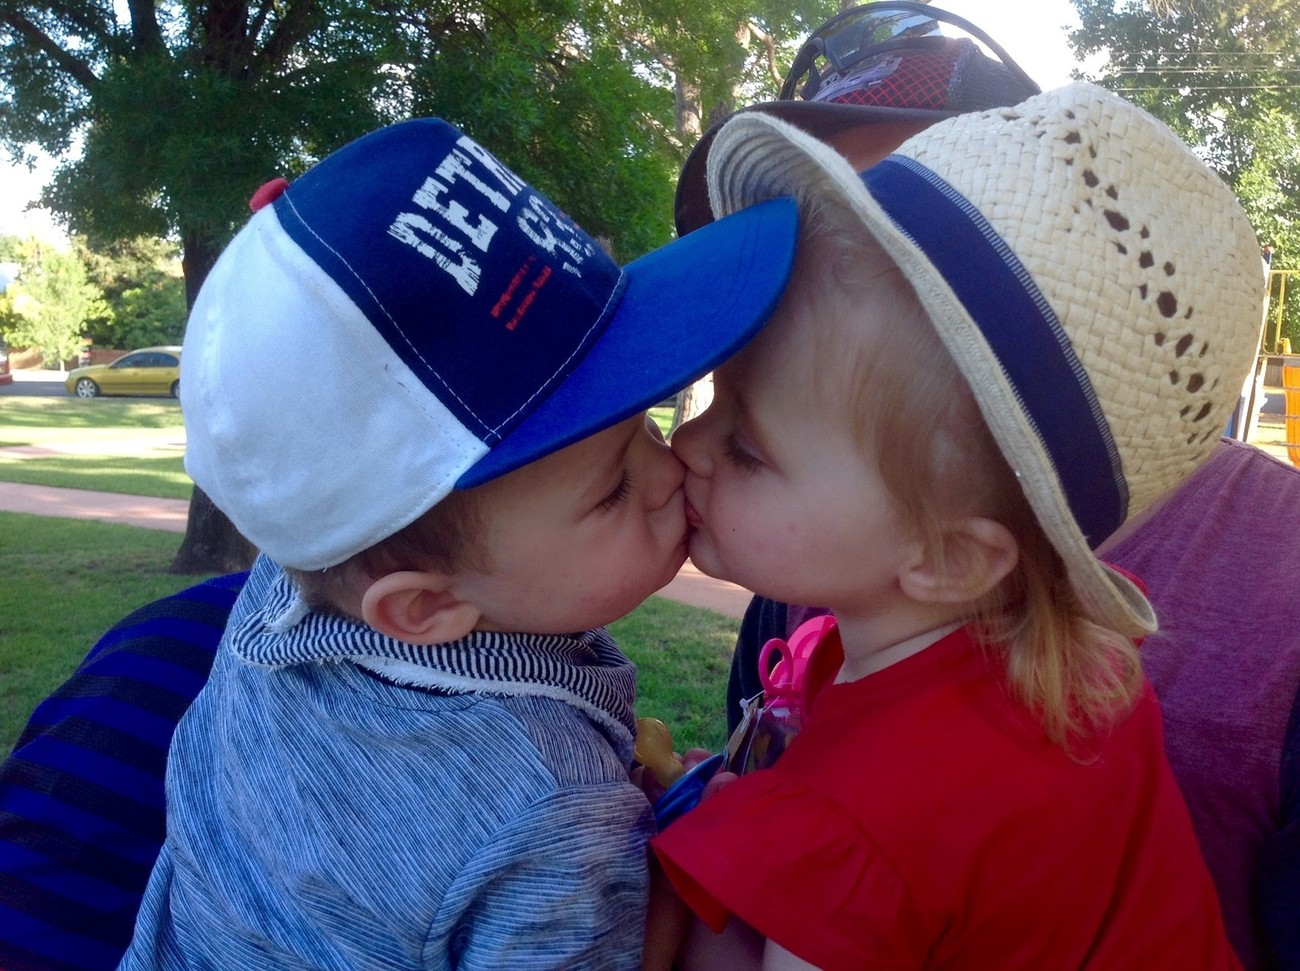 Cousins just saying goodbye after Christmas Day in the park. So cute!